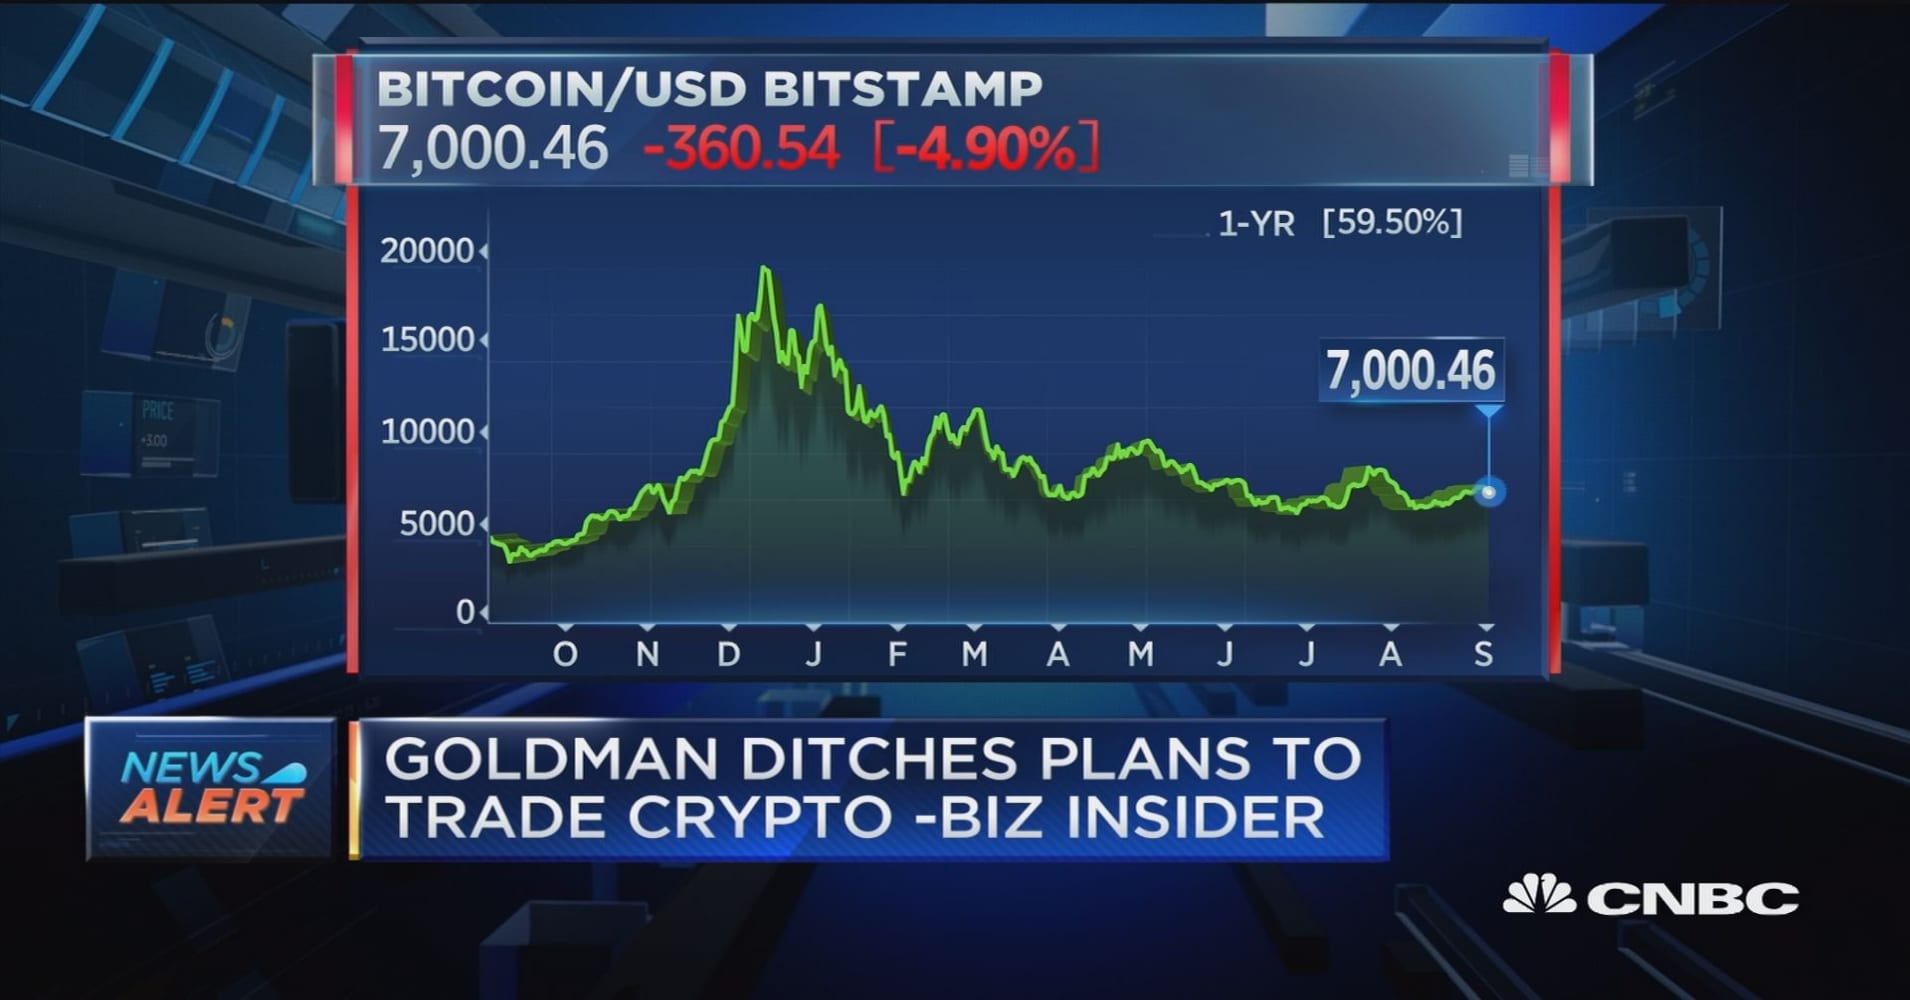 Goldman Sachs reportedly ditches plans to trade cryptocurrencies